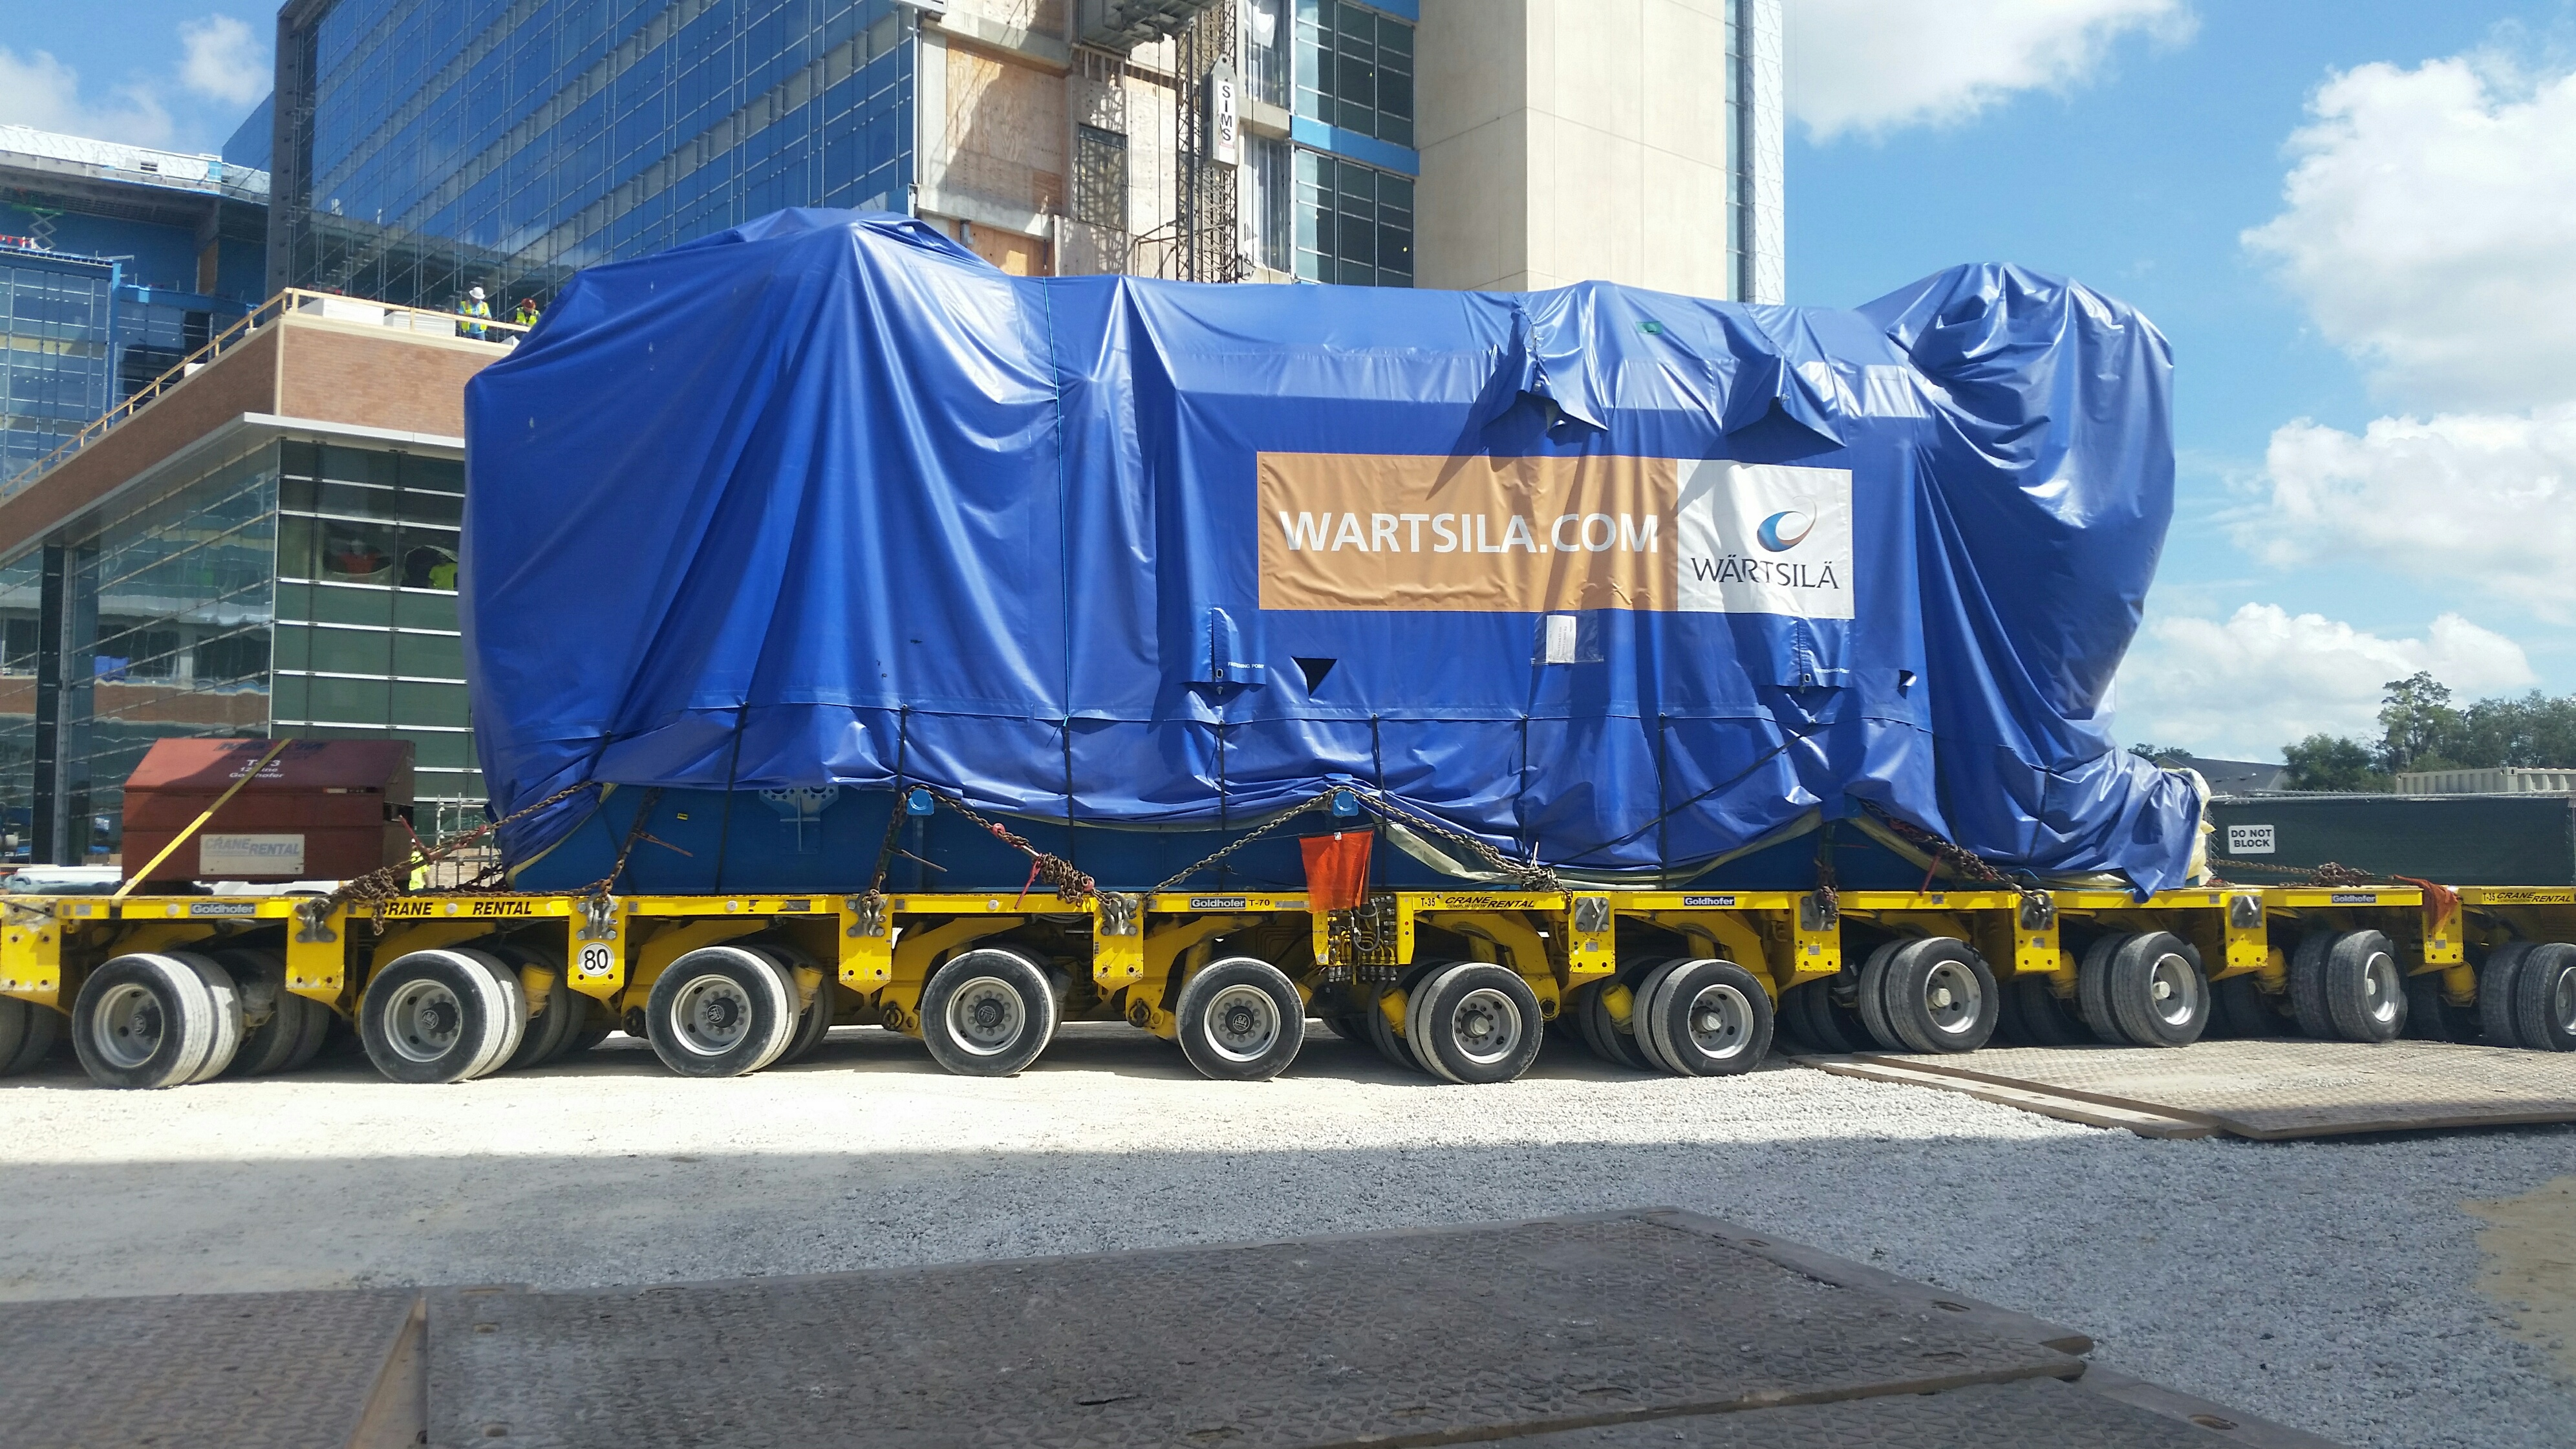 Massive generator to help power new hospitals Blueprints for